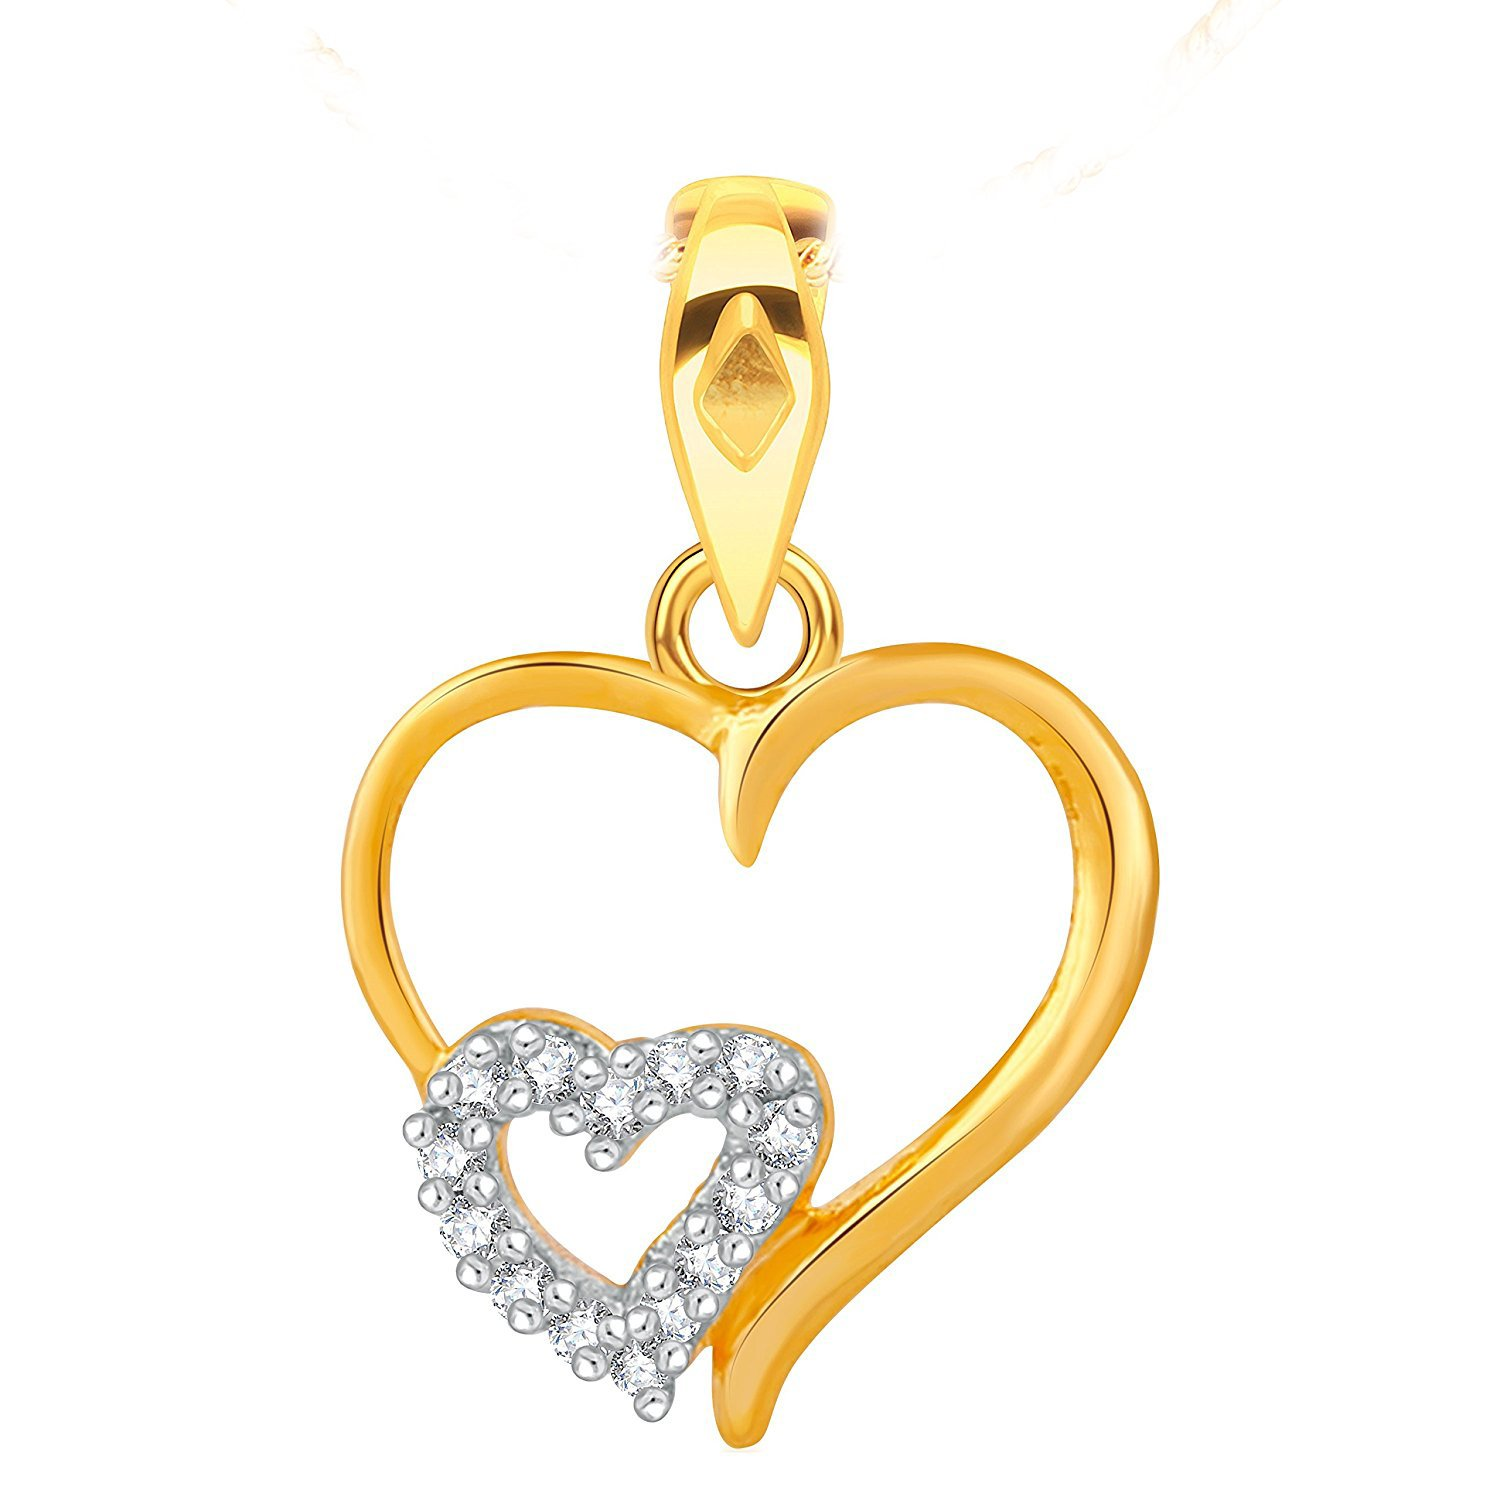 Suhana Jewellery Simulated Diamond Studded Love Promise Heart Pendant Necklace in 14K Yellow Gold Plated With Box Chain